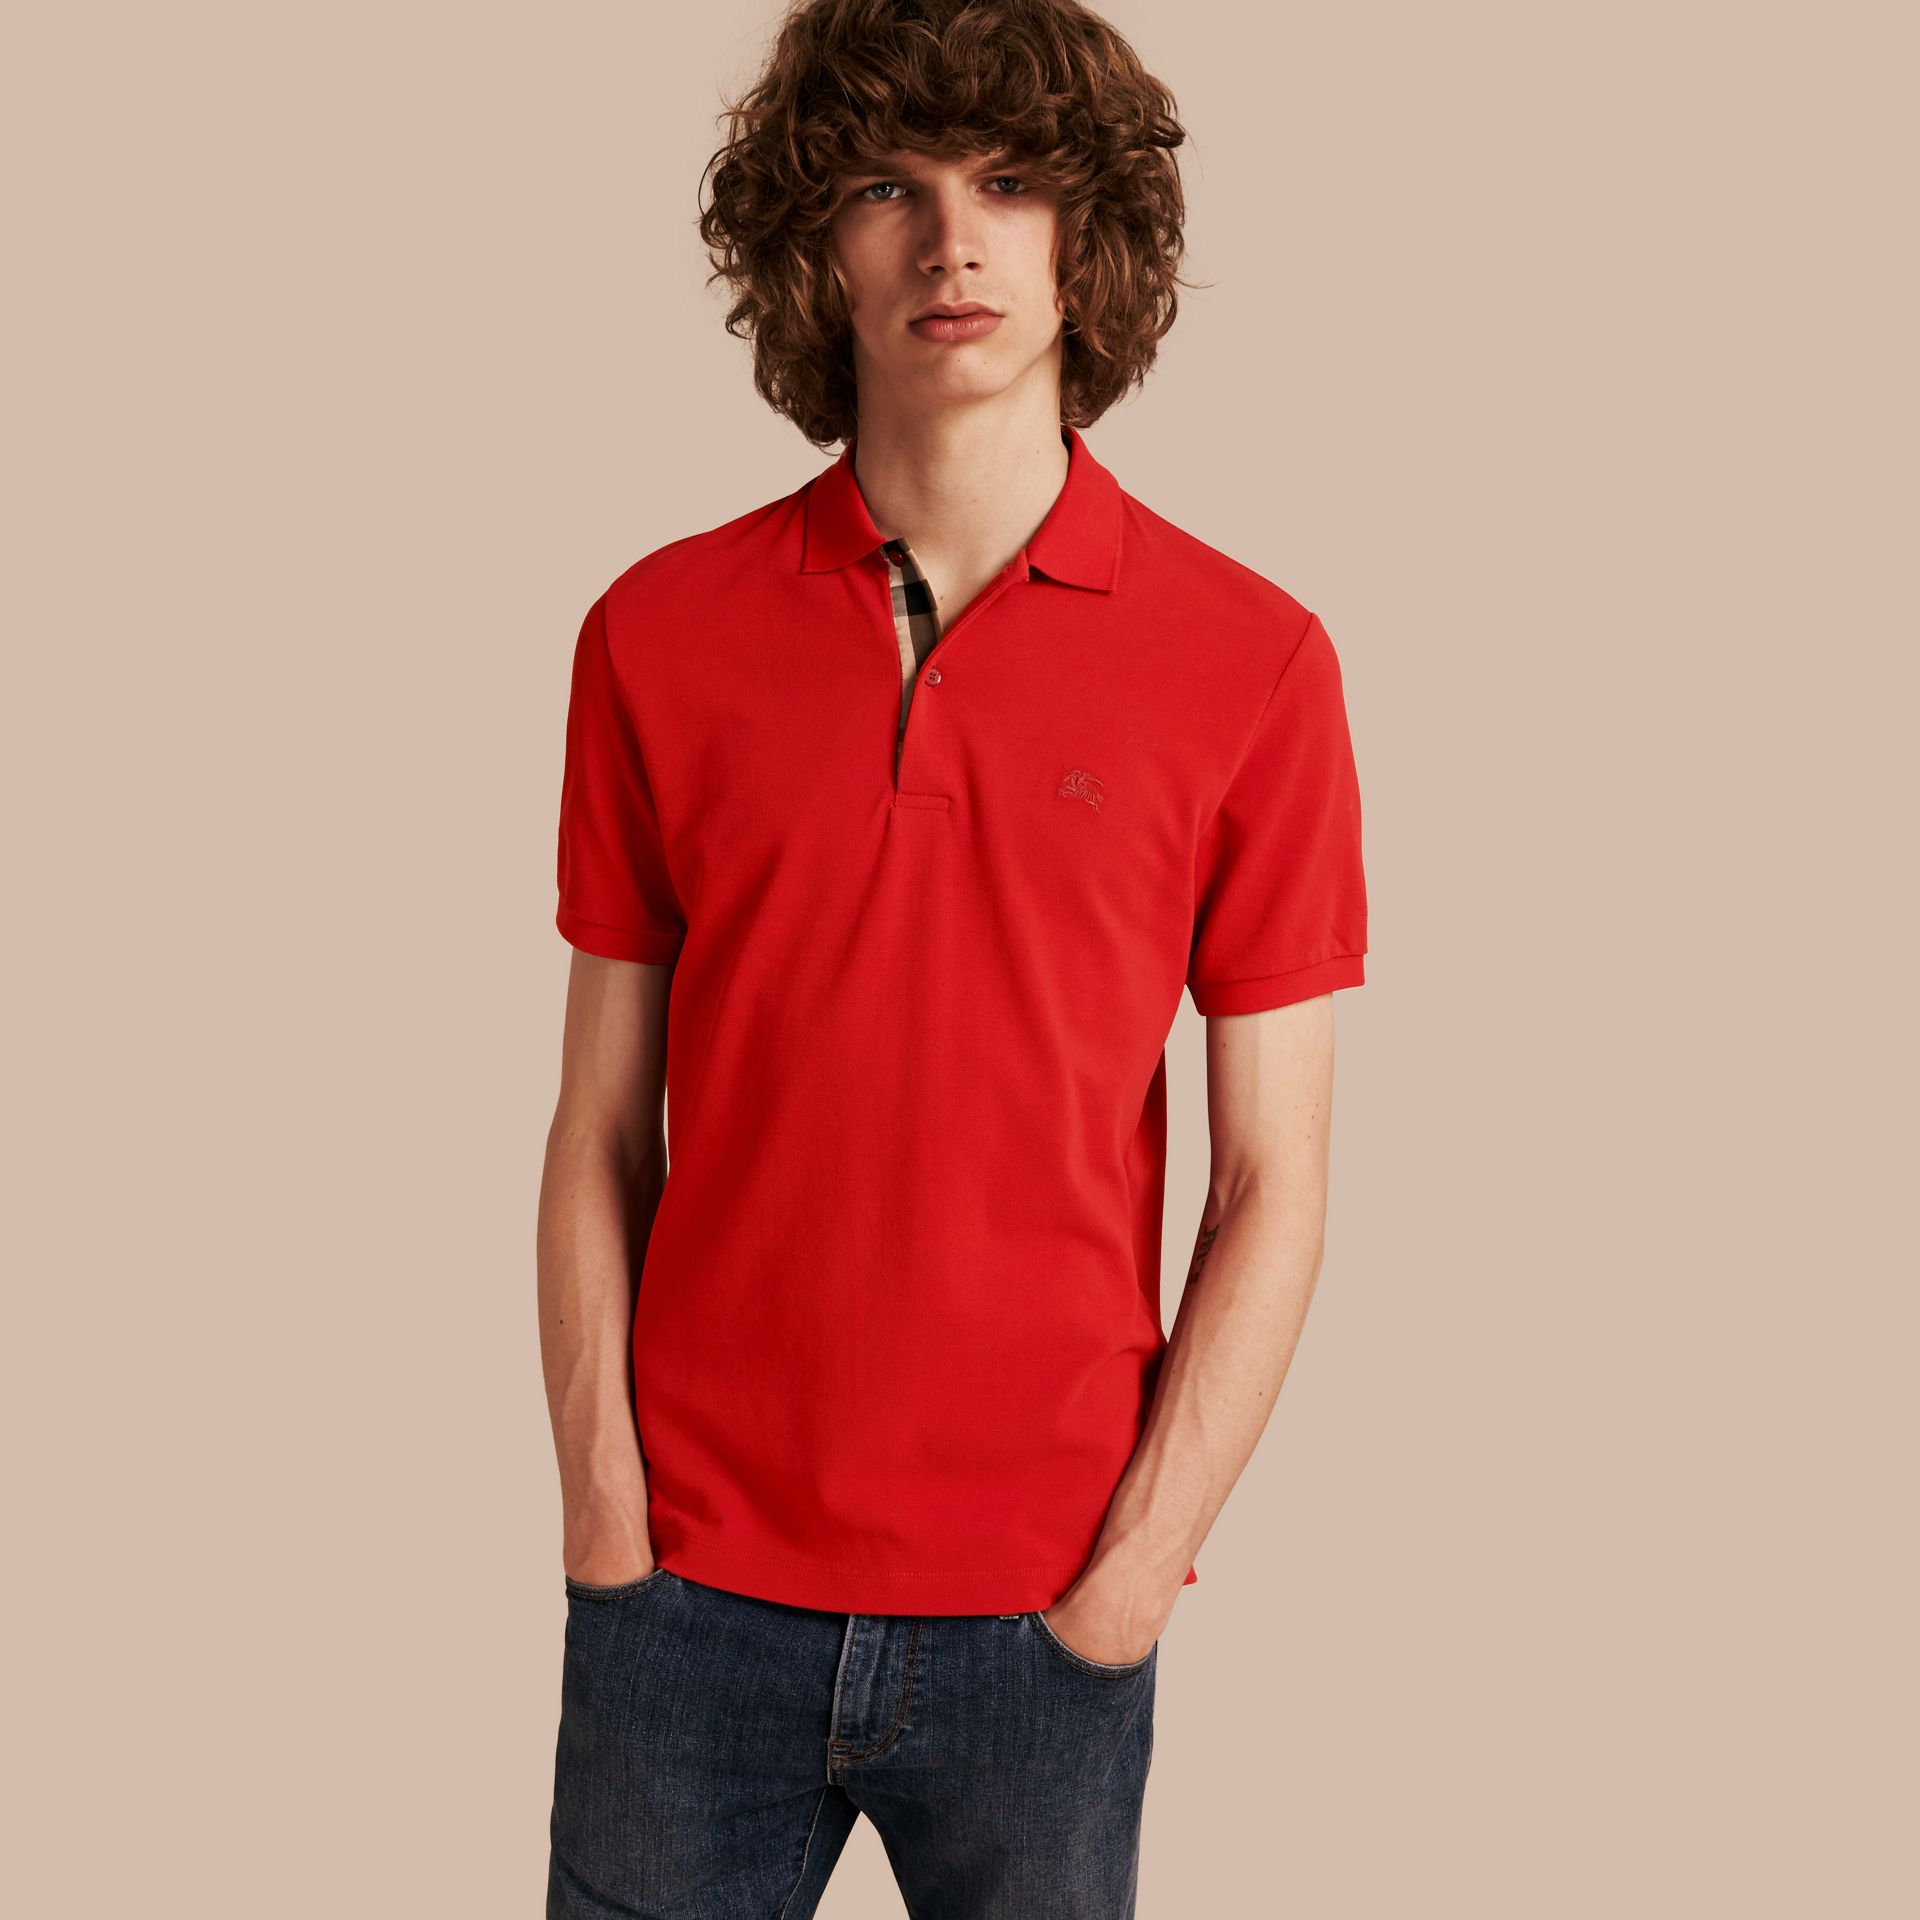 Military red Check Placket Cotton Piqué Polo Shirt Military Red - gallery image 1